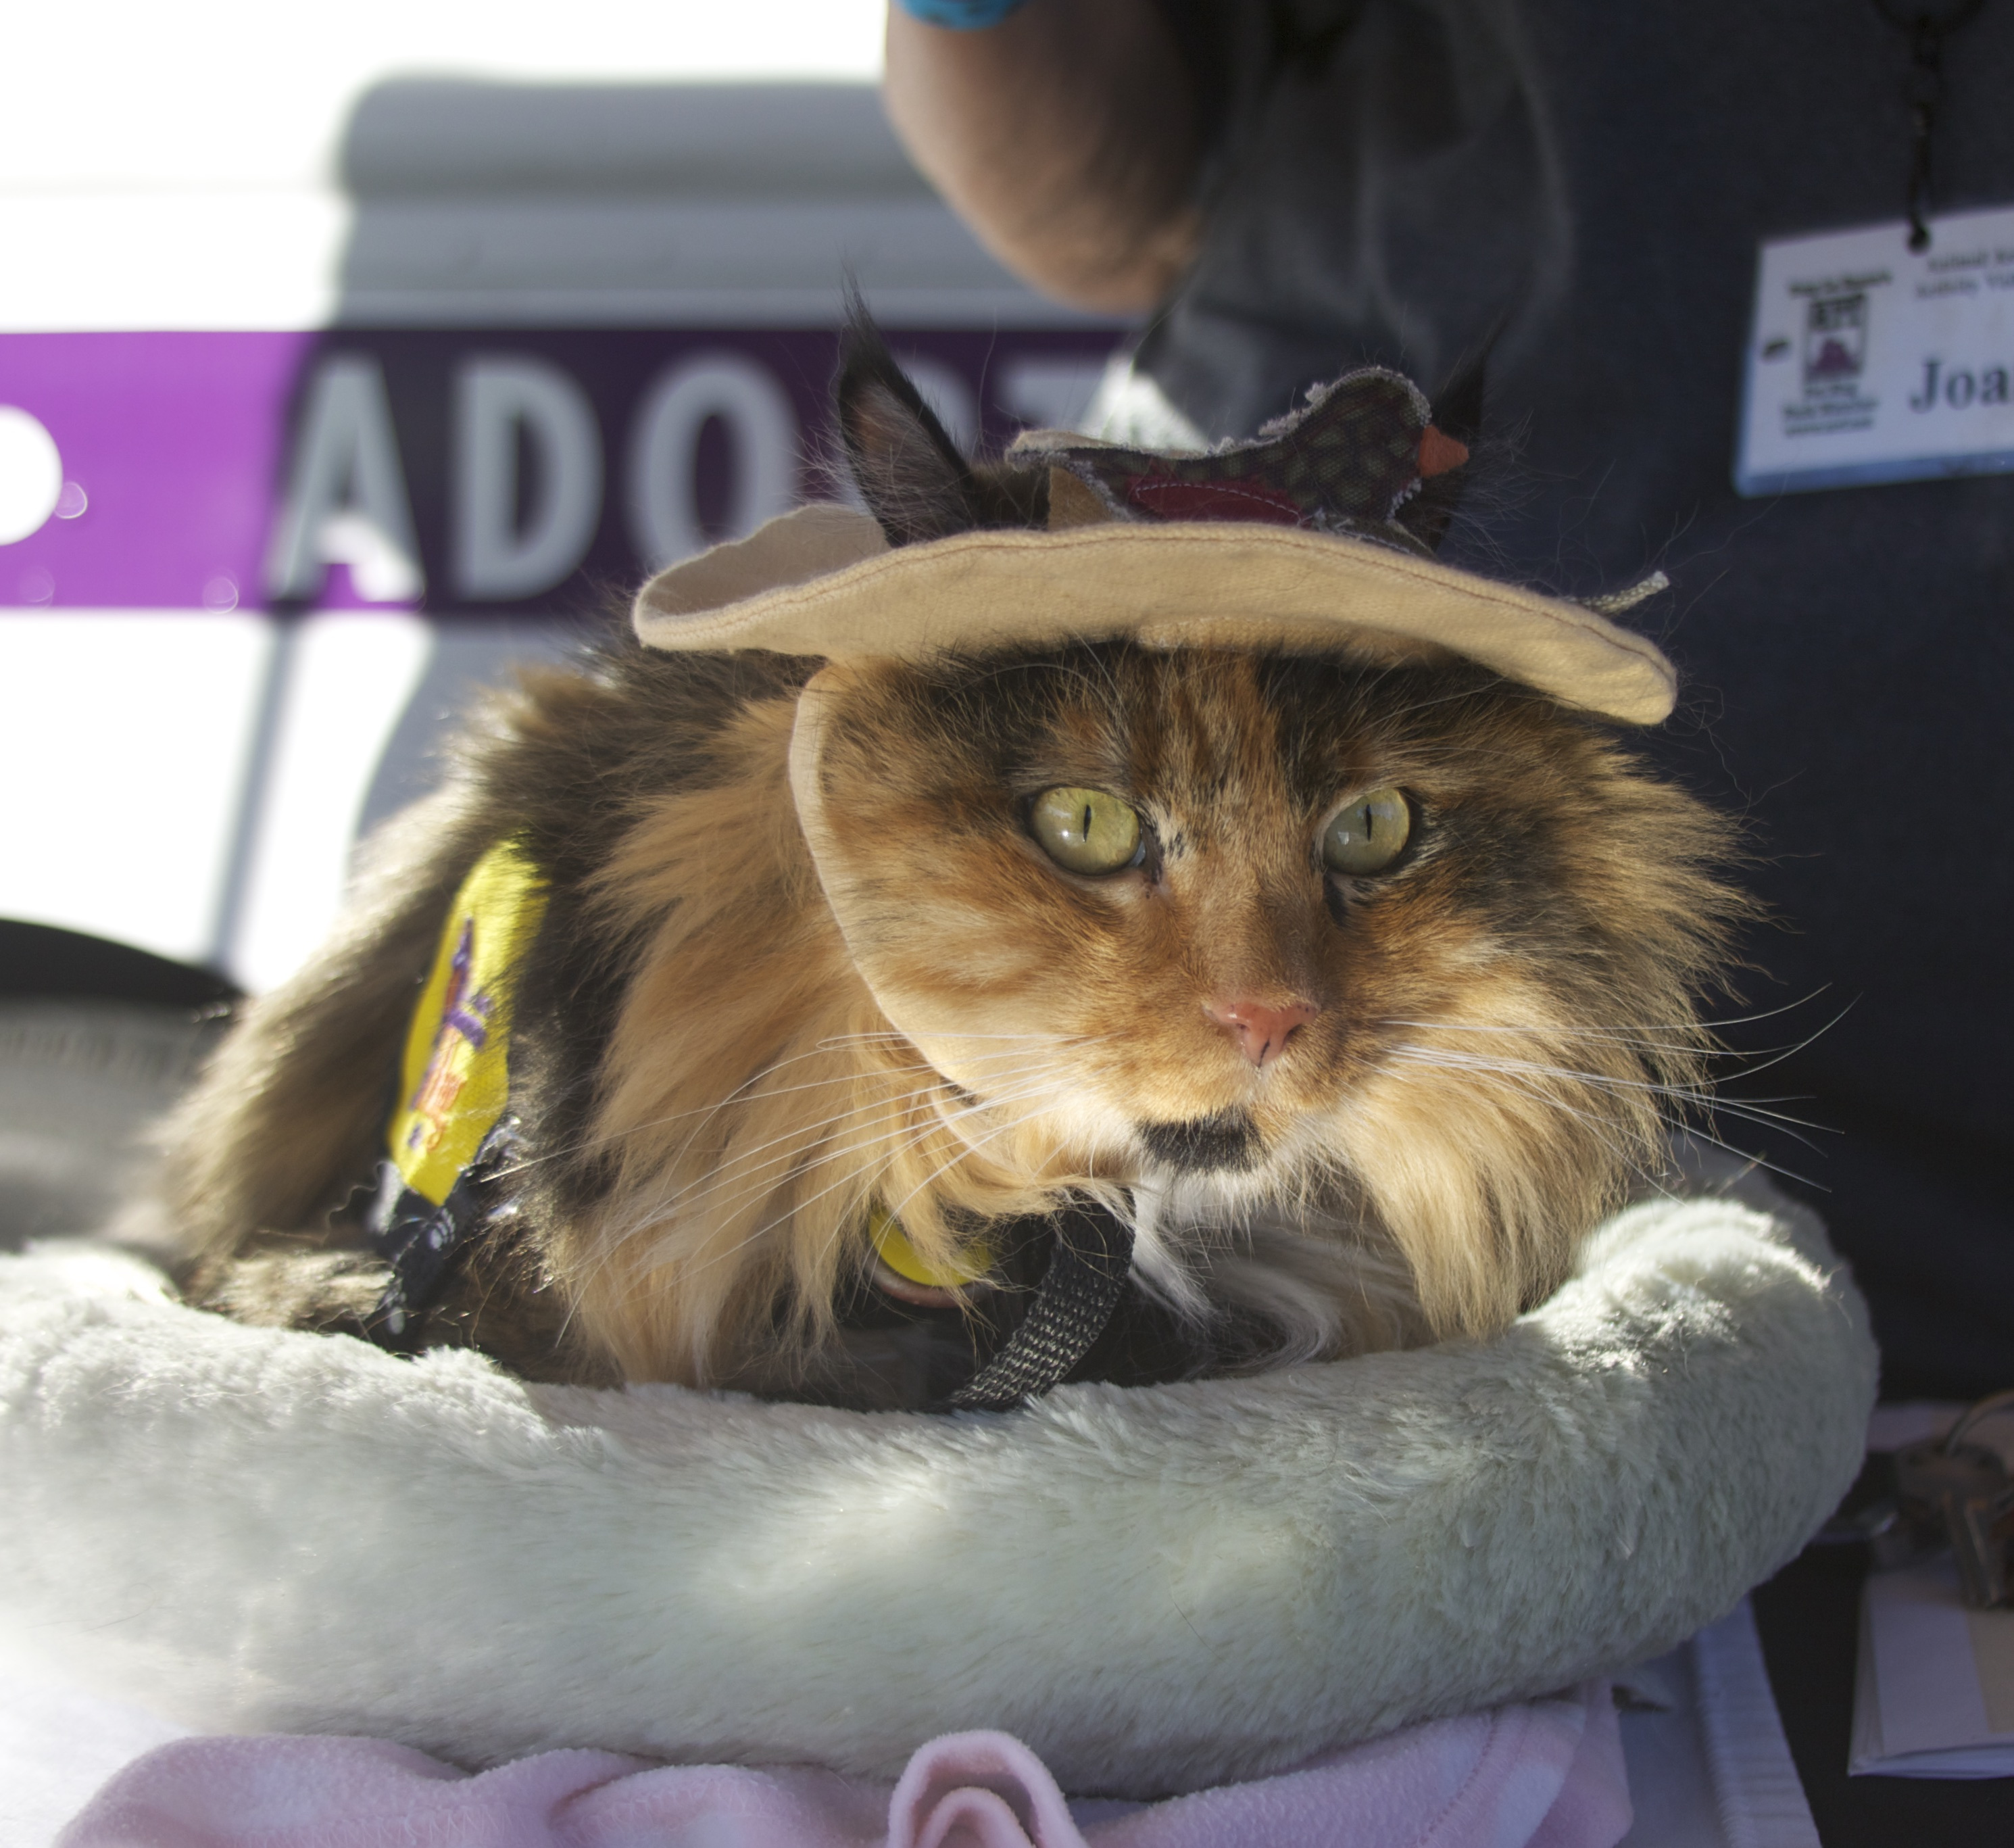 Long-Haired Calico Cat With Very Constricted Pupils Wearing Vest And Cloth Cap With Earholes